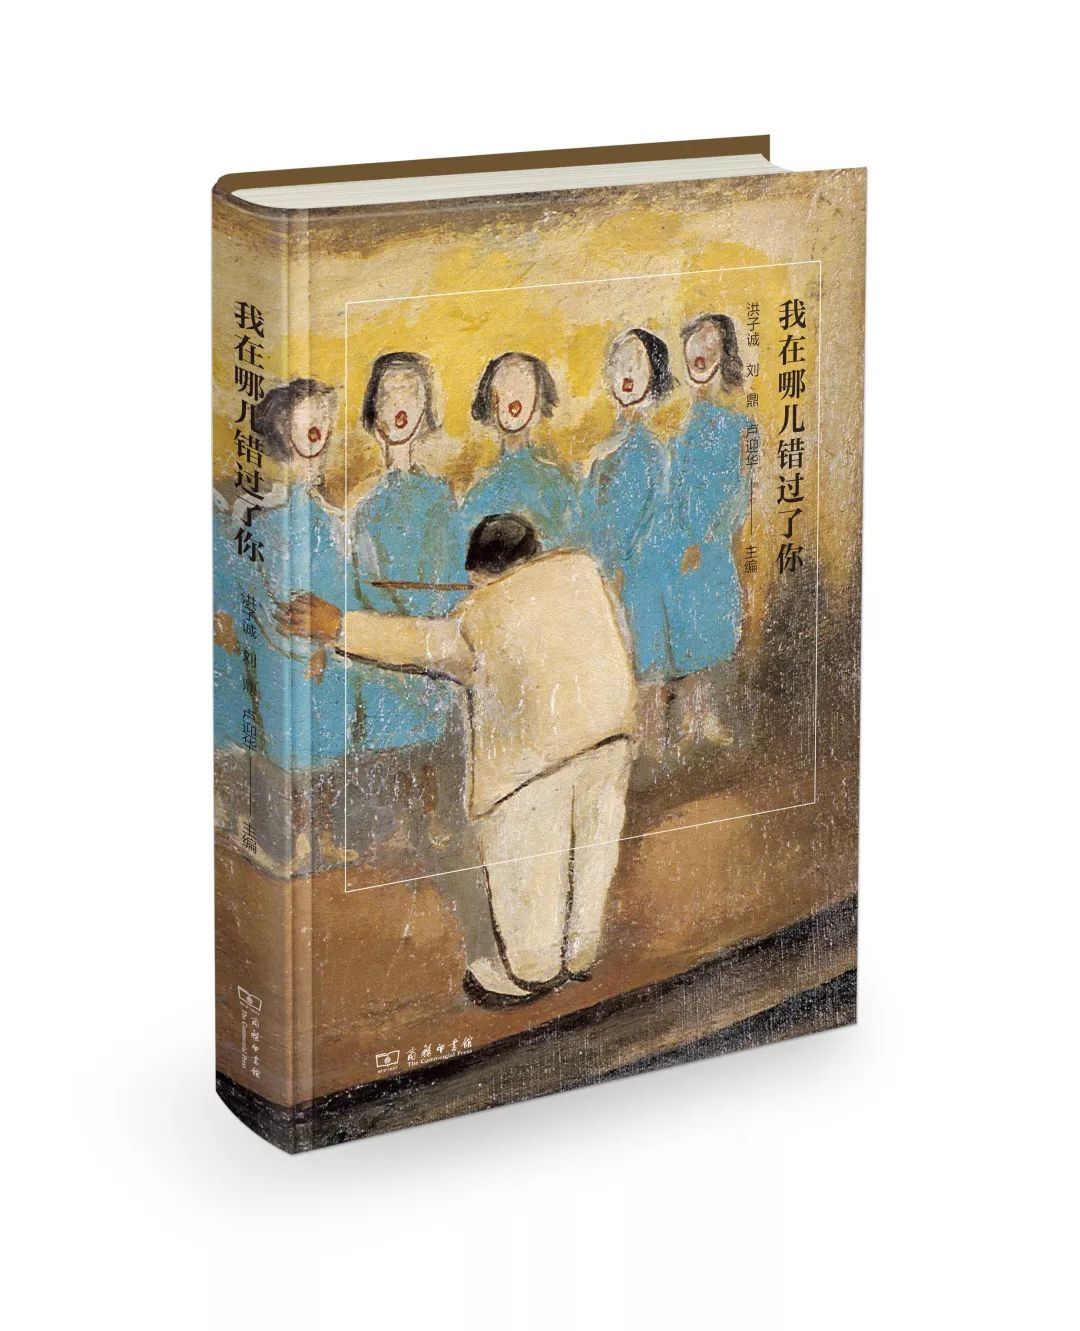 "《我在哪儿错过了你》    洪子诚、刘鼎、卢迎华 编著     Where Have I Missed You     Edited by Hong Zicheng, Liu Ding, Carol Yinghua Lu   本书由北京大学中文系教授洪子诚,艺术家、策展人刘鼎与中间美术馆馆长卢迎华共同主编,邀请了钱理群、翟永明、西川、孙郁、格非、娄烨、王璜生、丁乙、丘挺、徐坚等29位作家、诗人、学者、导演、艺术家,撰文评述自己曾经错过或差点错过,但对自己的思考与创作产生了重要影响的""文本""。作者们各自关注的话题、提出的问题、表现出的价值观和审美趣味为不同领域的从业者共同分享,重新建立起曾经错过的交会点,重拾互相激发的美好时光。  Conceived and edited by Hong Zicheng, Professor of Chinese Literature at Peking University, Liu Ding, artist, curator and Carol Yinghua Lu, director of Beijing Inside-Out Art Museum, this book is a rich collection of essays by 29 distinguished writers, poets, film and theatre directors, scholars and artists, including the likes of Qian Liqun, Zhai Yongming, Xi Chuan, Sun Yu, Ge Fei, Lou Ye, Wang Huangsheng, Ding Yi, Qiu Ting, Xu Jian. They were invited to elaborate on specific texts that had made a significant impact on their ways of thinking and practice, yet they had missed before or nearly missed. Contributors to this publication shared their passions, insights, perspectives, and values rooted in their individual experiences and fields of practice and formed new alliances of opinions and interests."